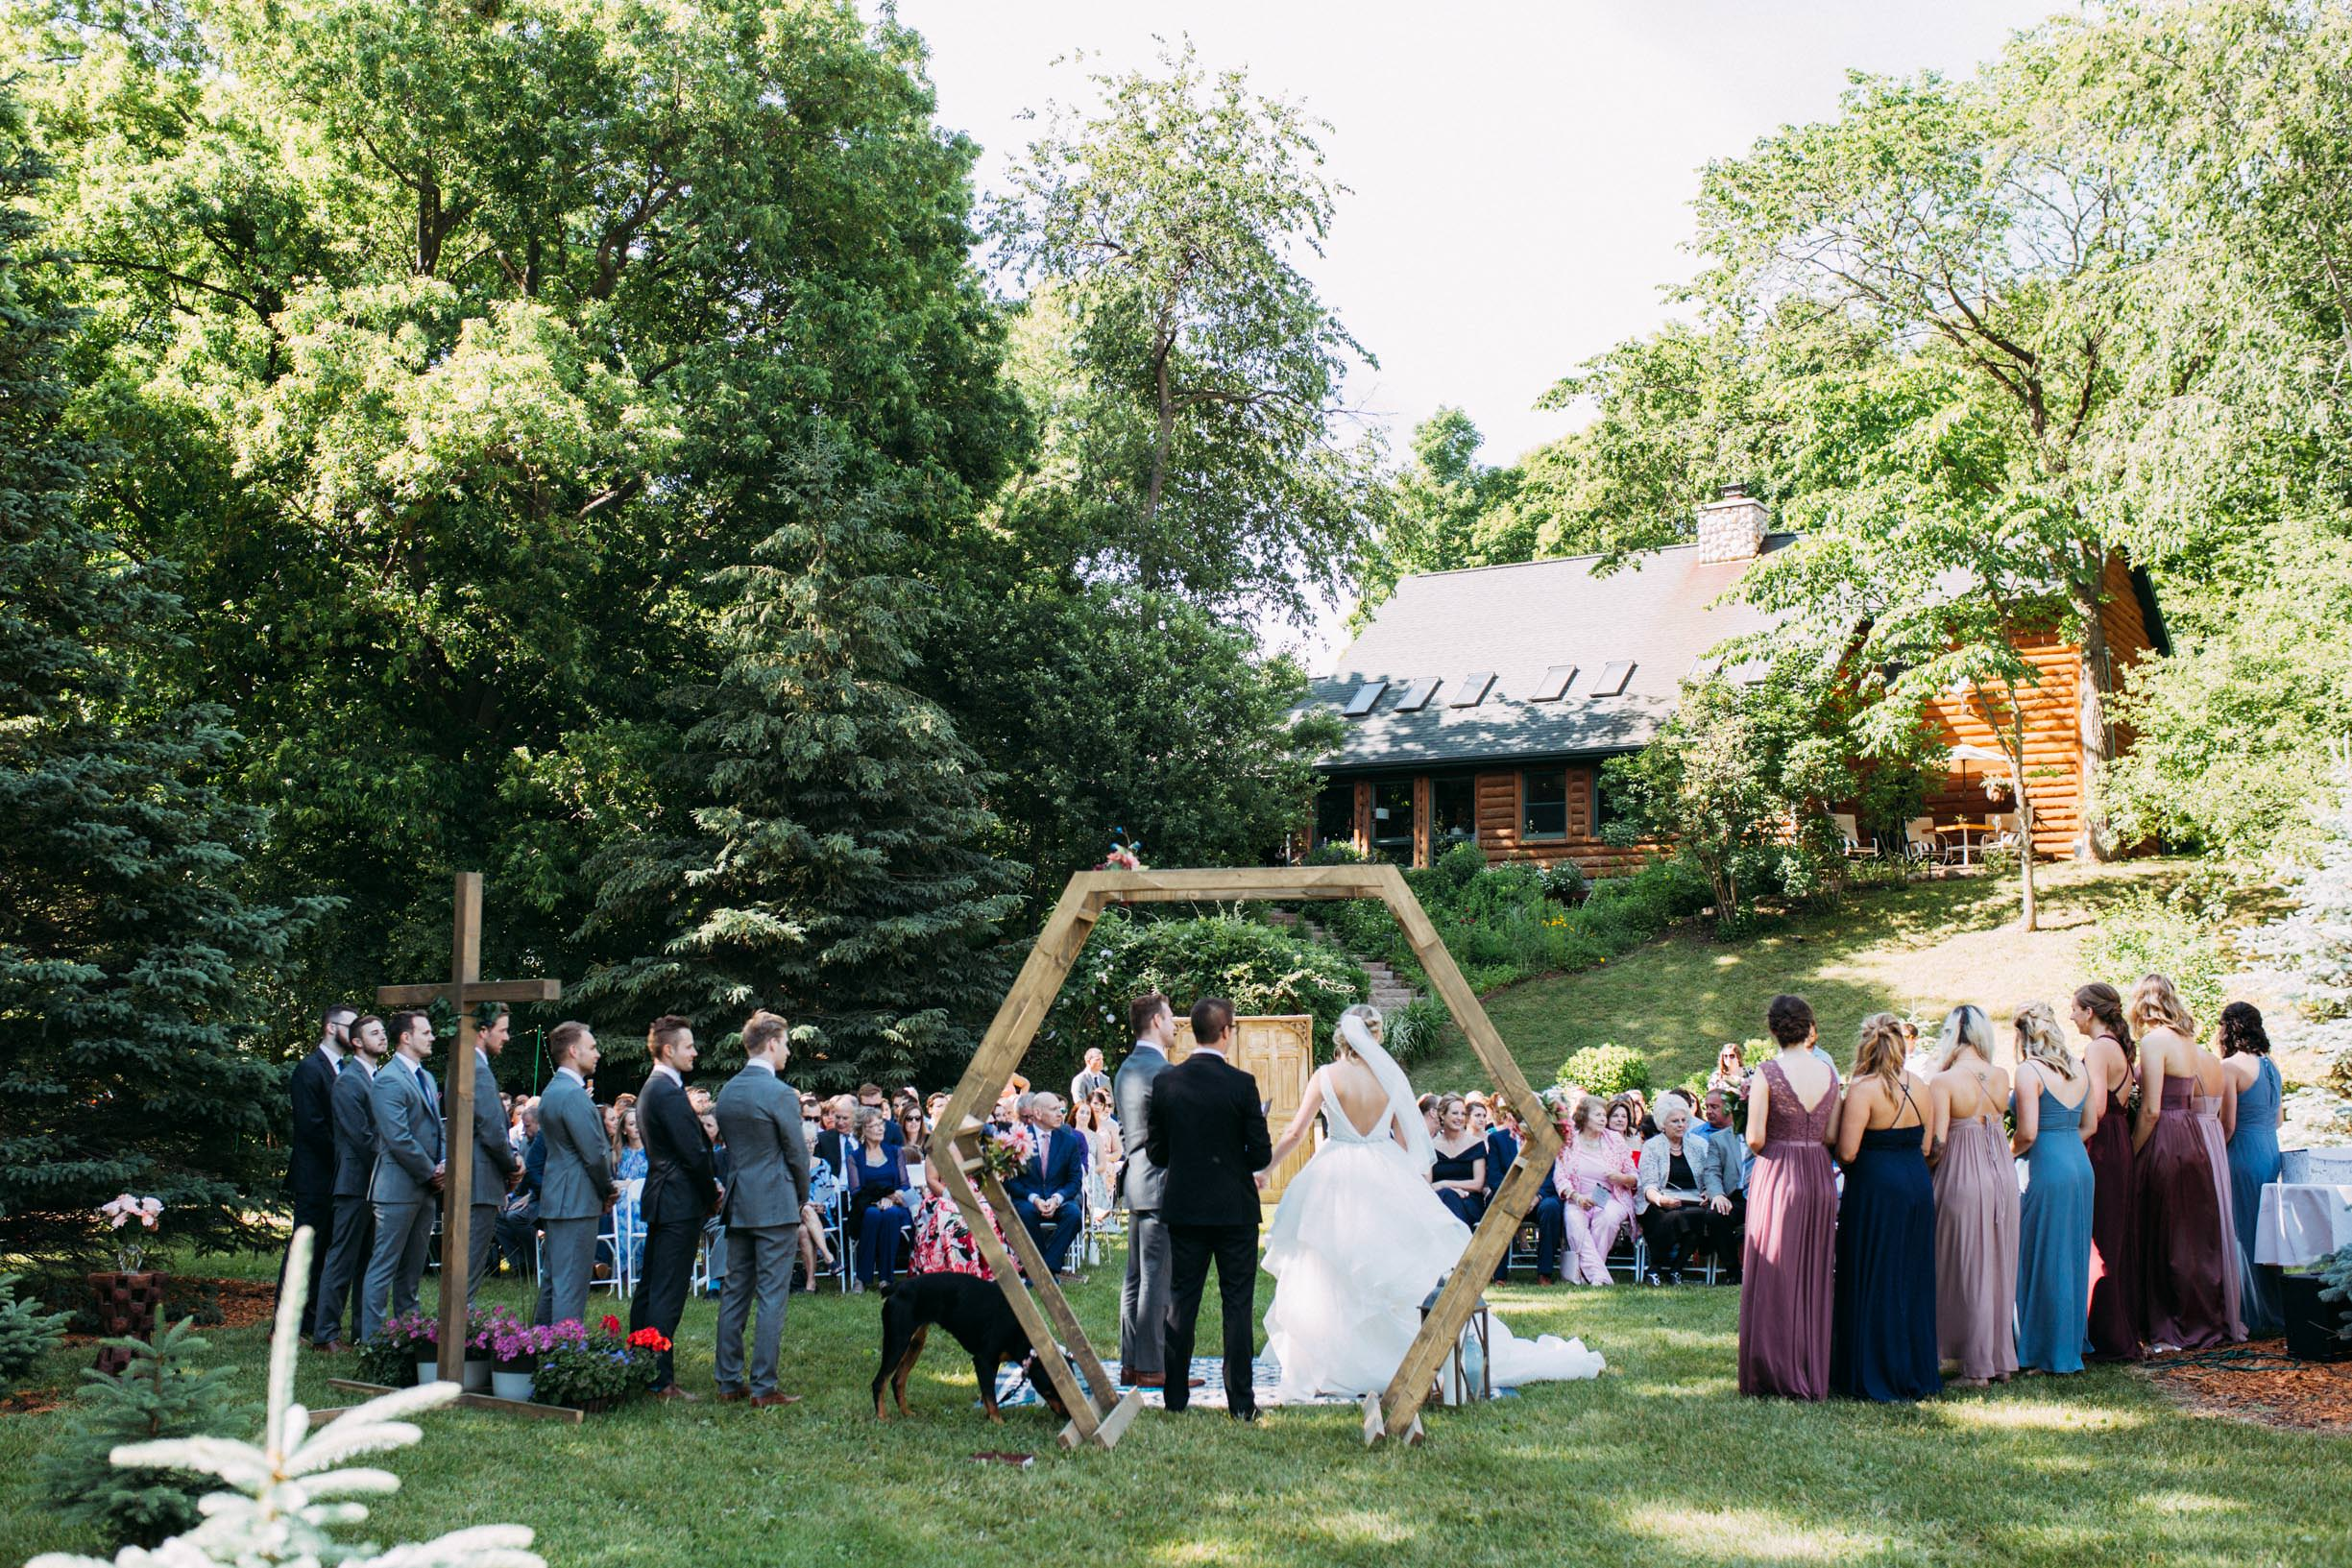 Carley_Trammell_GreenBay_Backyard_Wedding_Blog-66.jpg